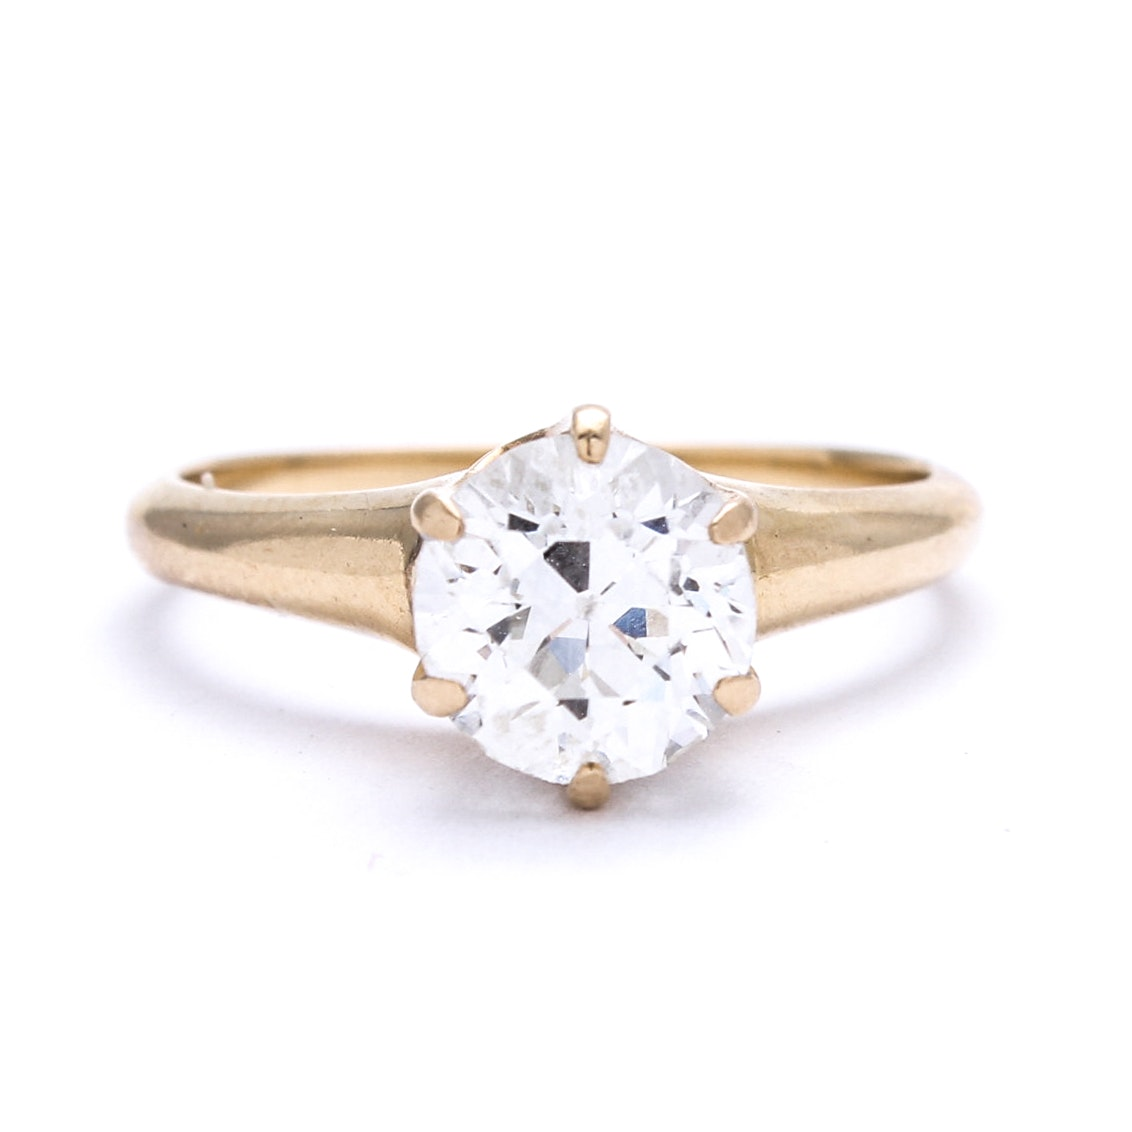 14K Yellow Gold and Platinum 1.41 CT Diamond Ring